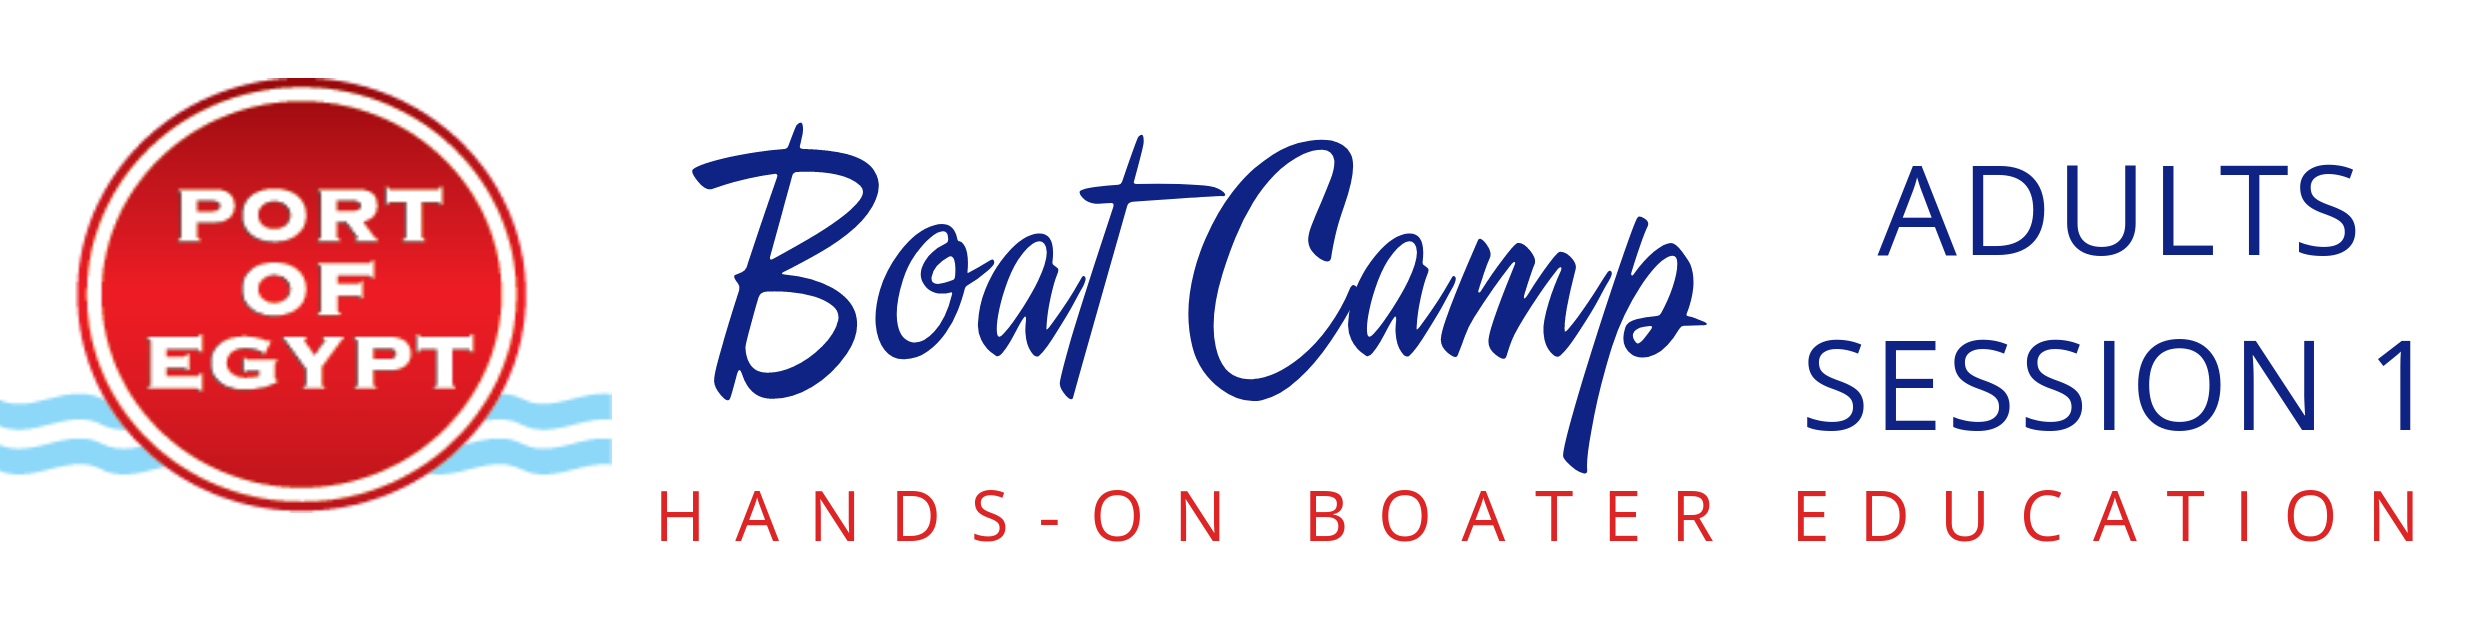 Boat Camp Header .png